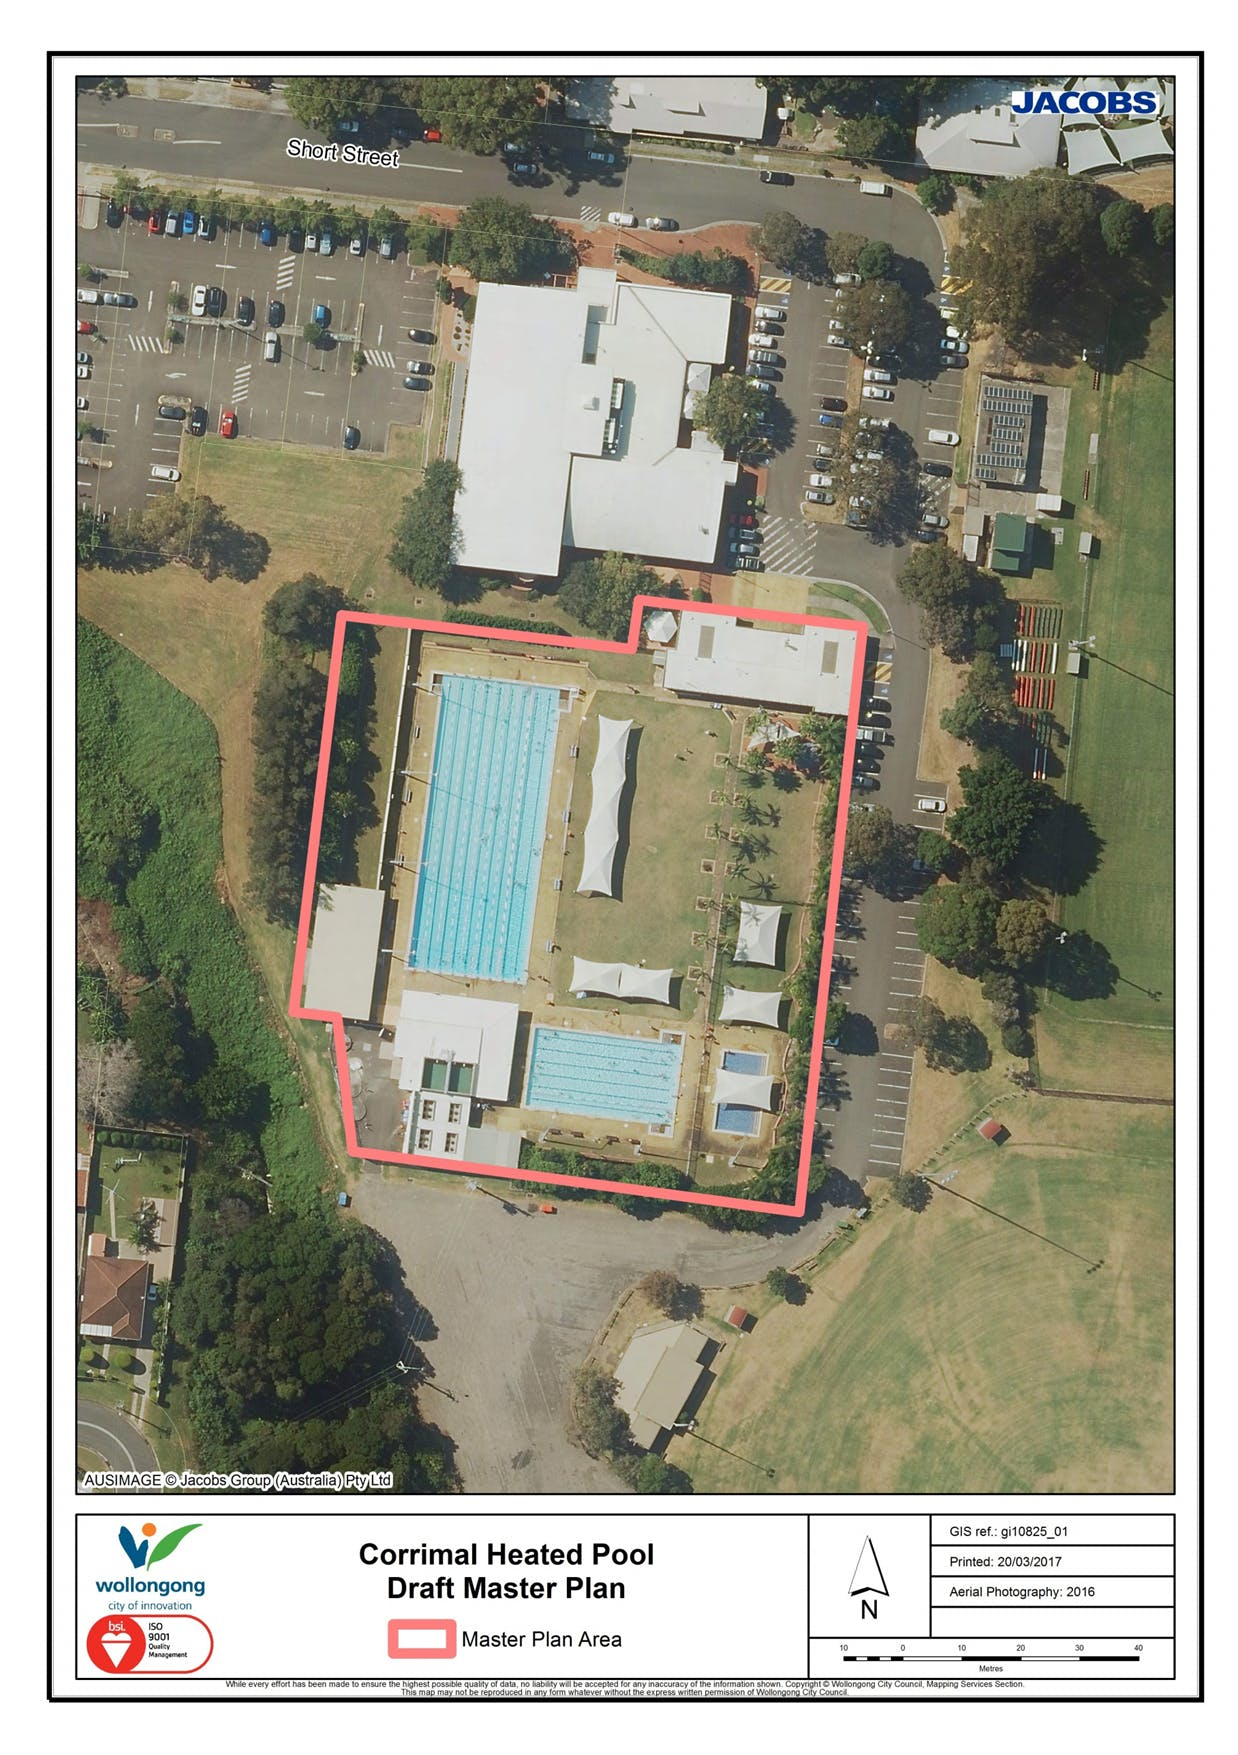 Corrimal Heated Pool